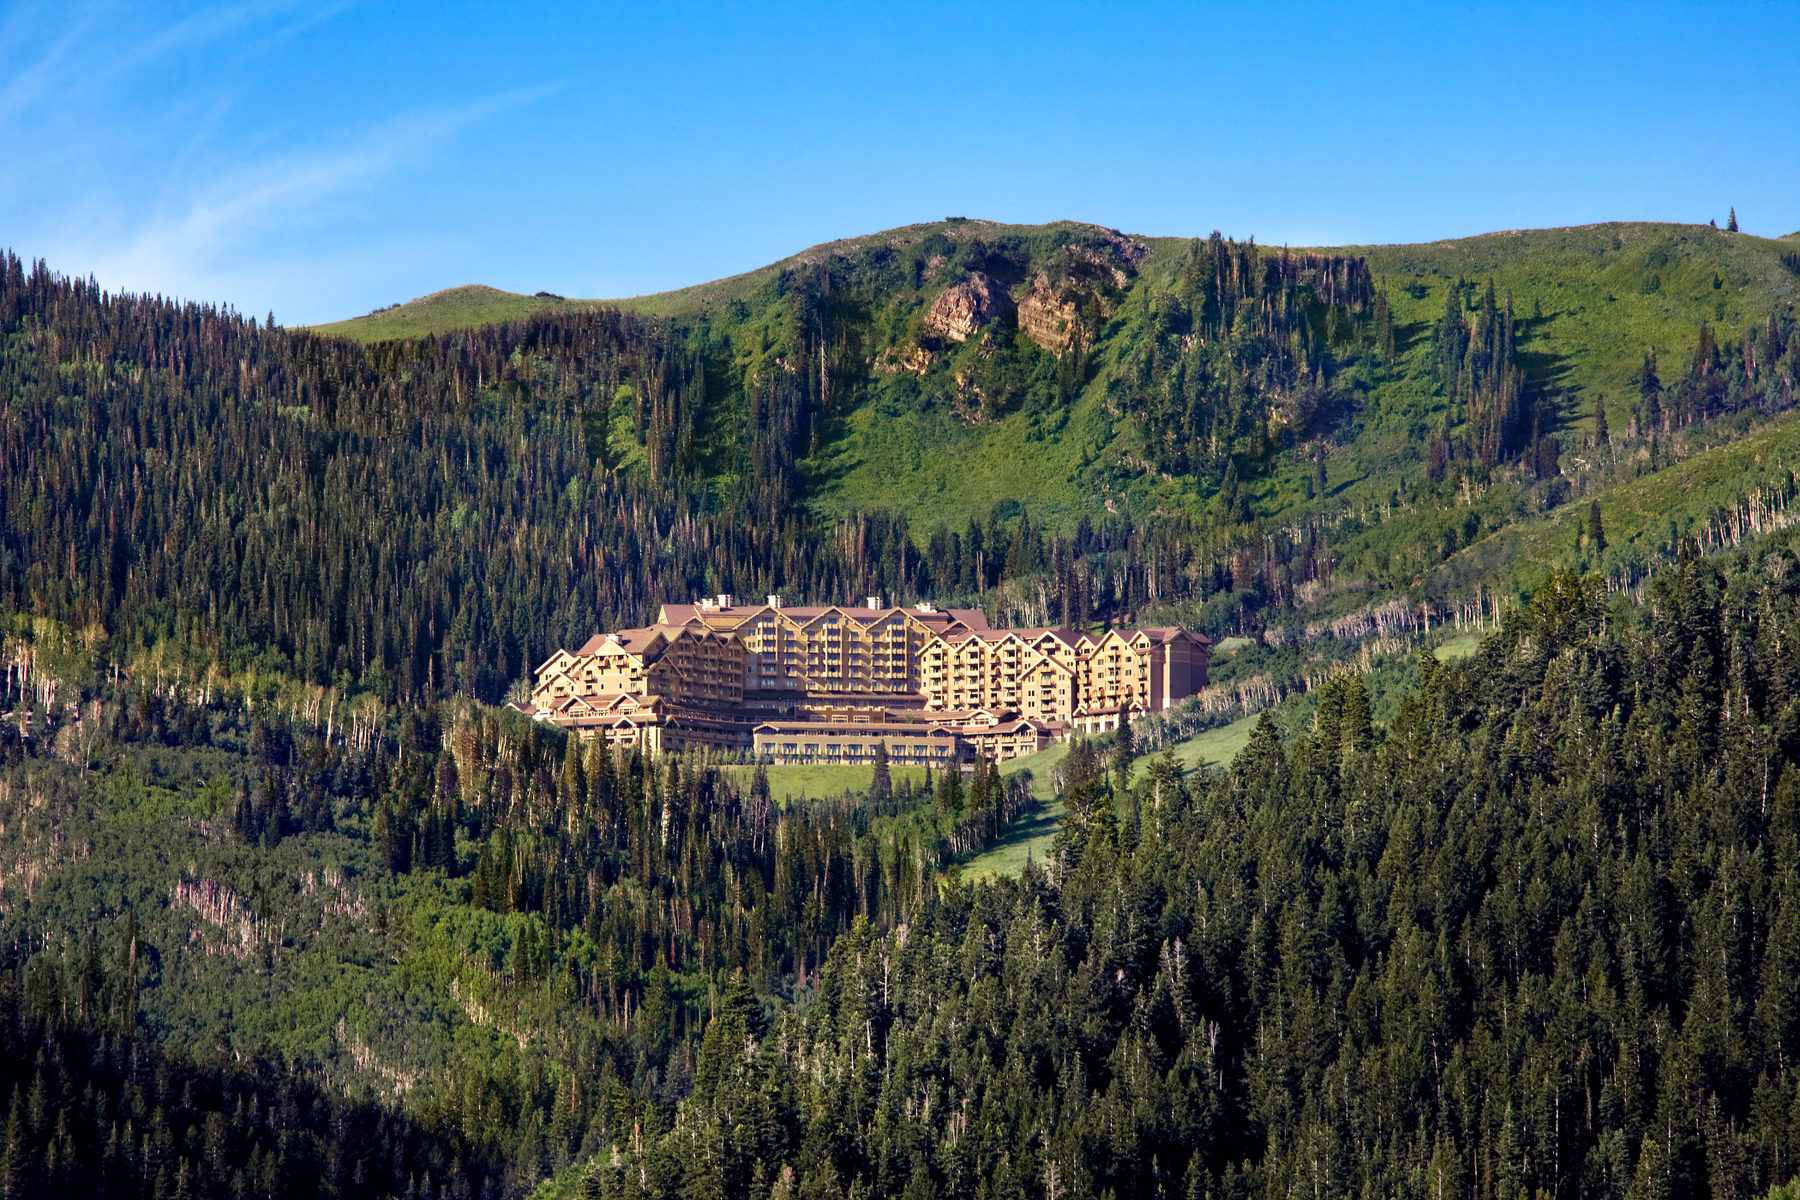 Condominium for Sale at Montage Residences at Deer Valley 9100 Marsac Ave #1001 Park City, Utah 84060 United States